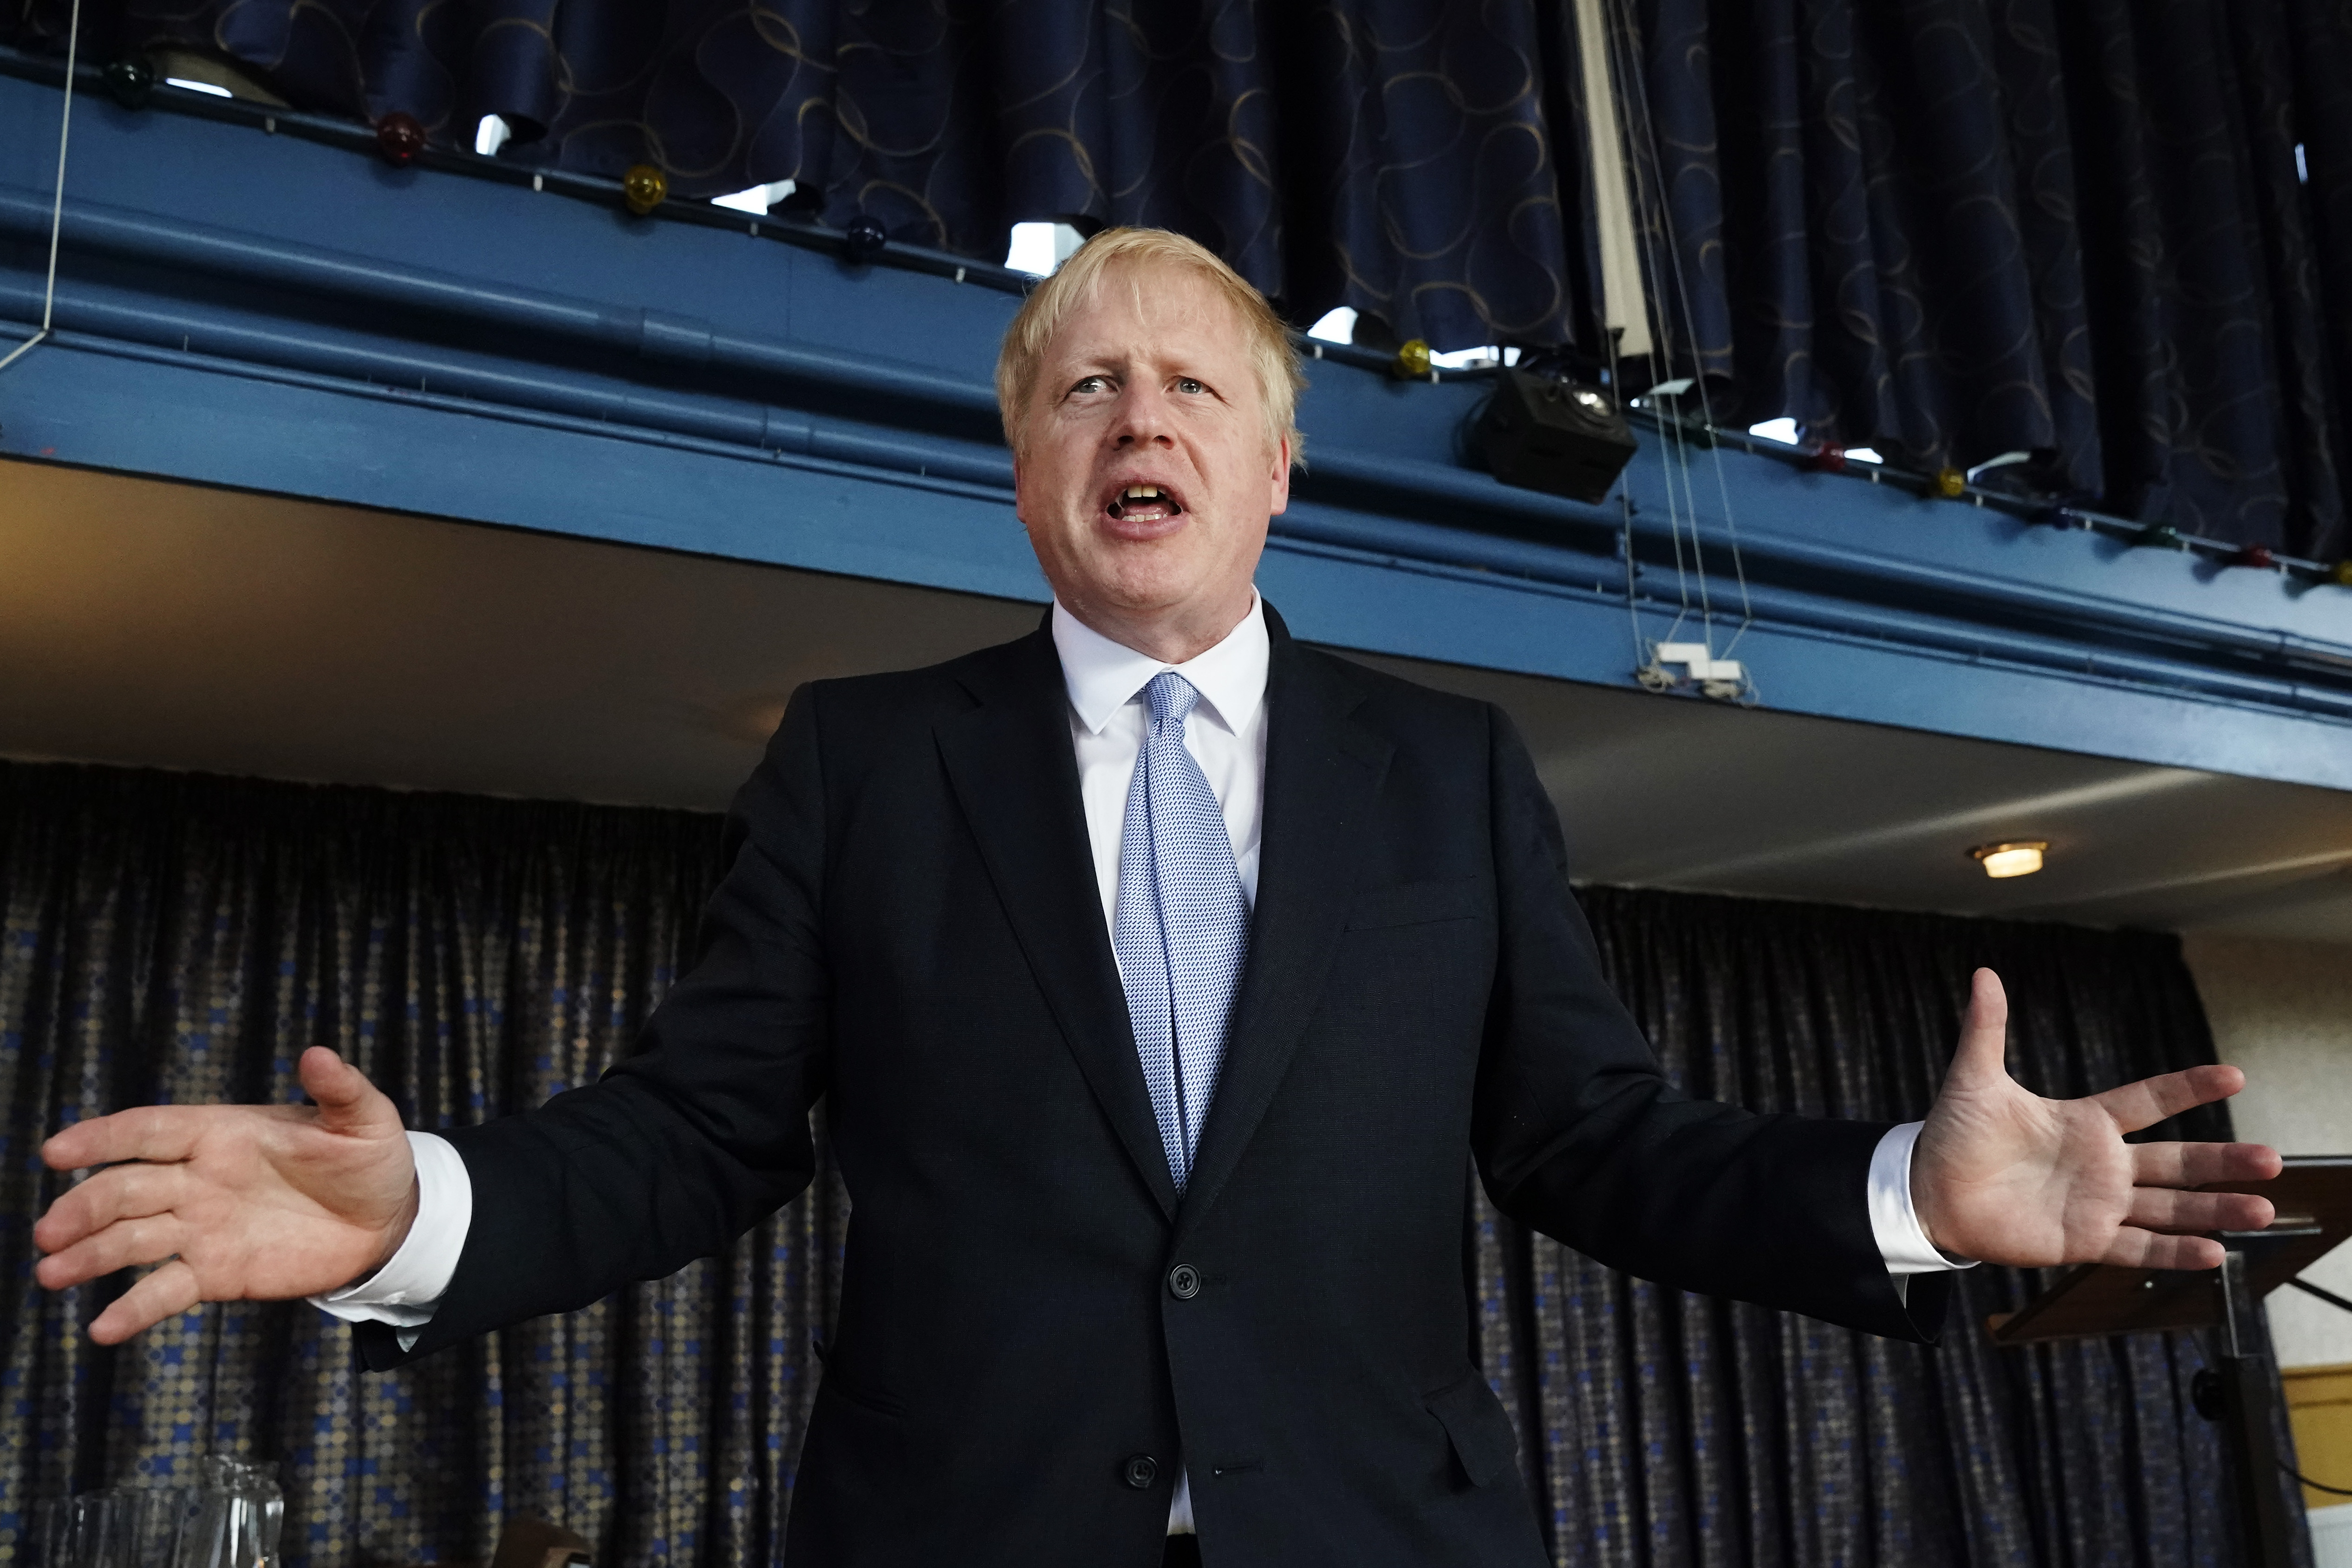 Conservative party leadership contender Boris Johnson speaking at a campaign event in Wombourne in the West Midlands.